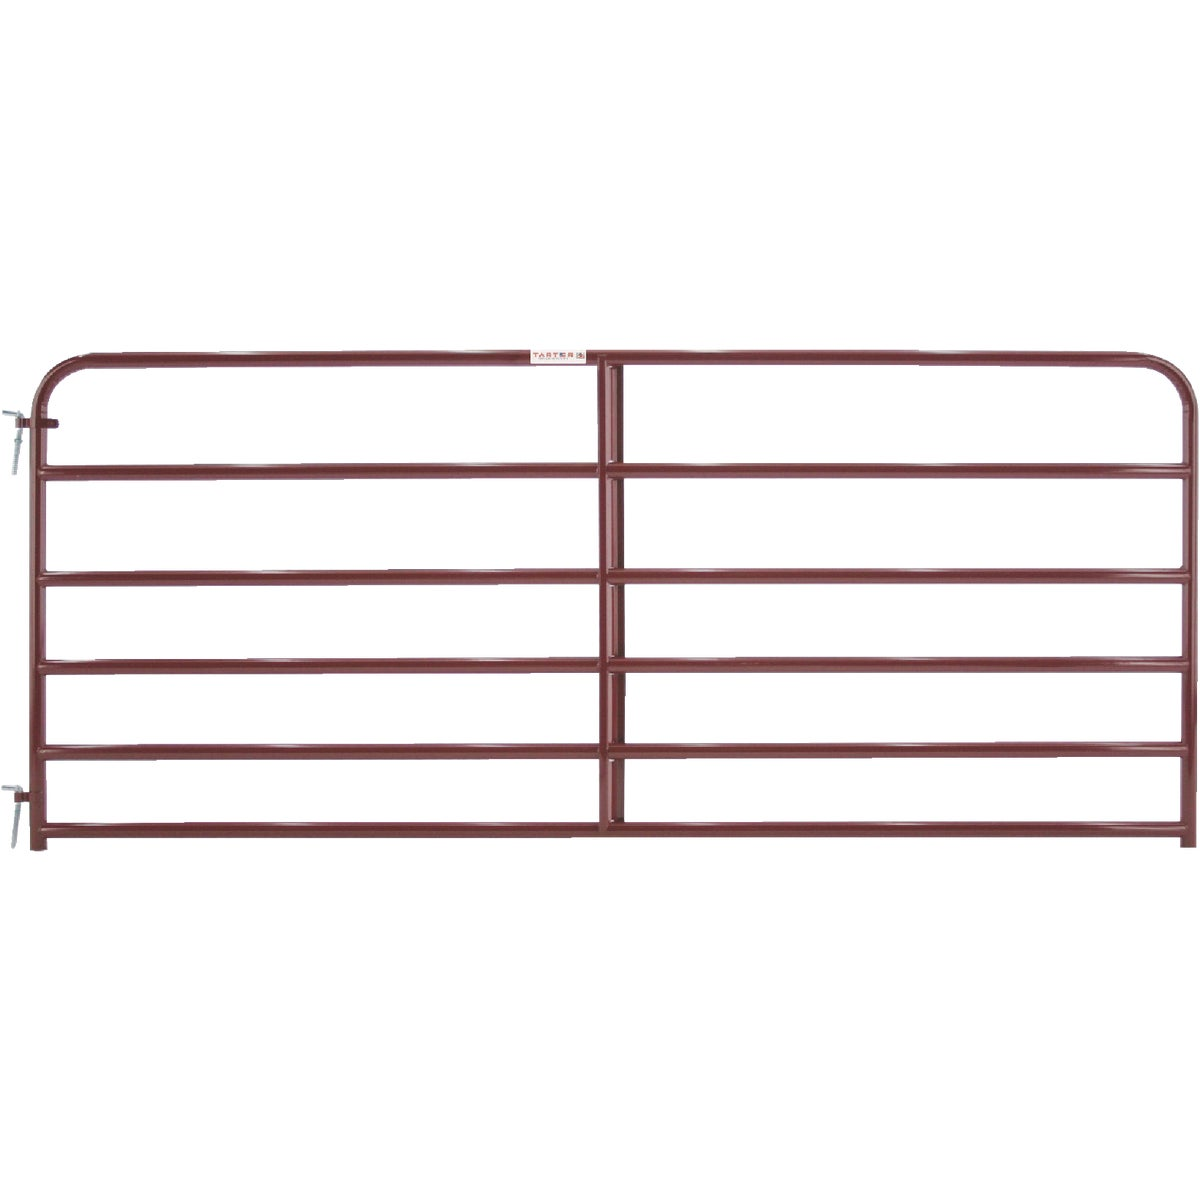 10' 6BAR RED ECONO GATE - 6ER10 by Tarter Llc